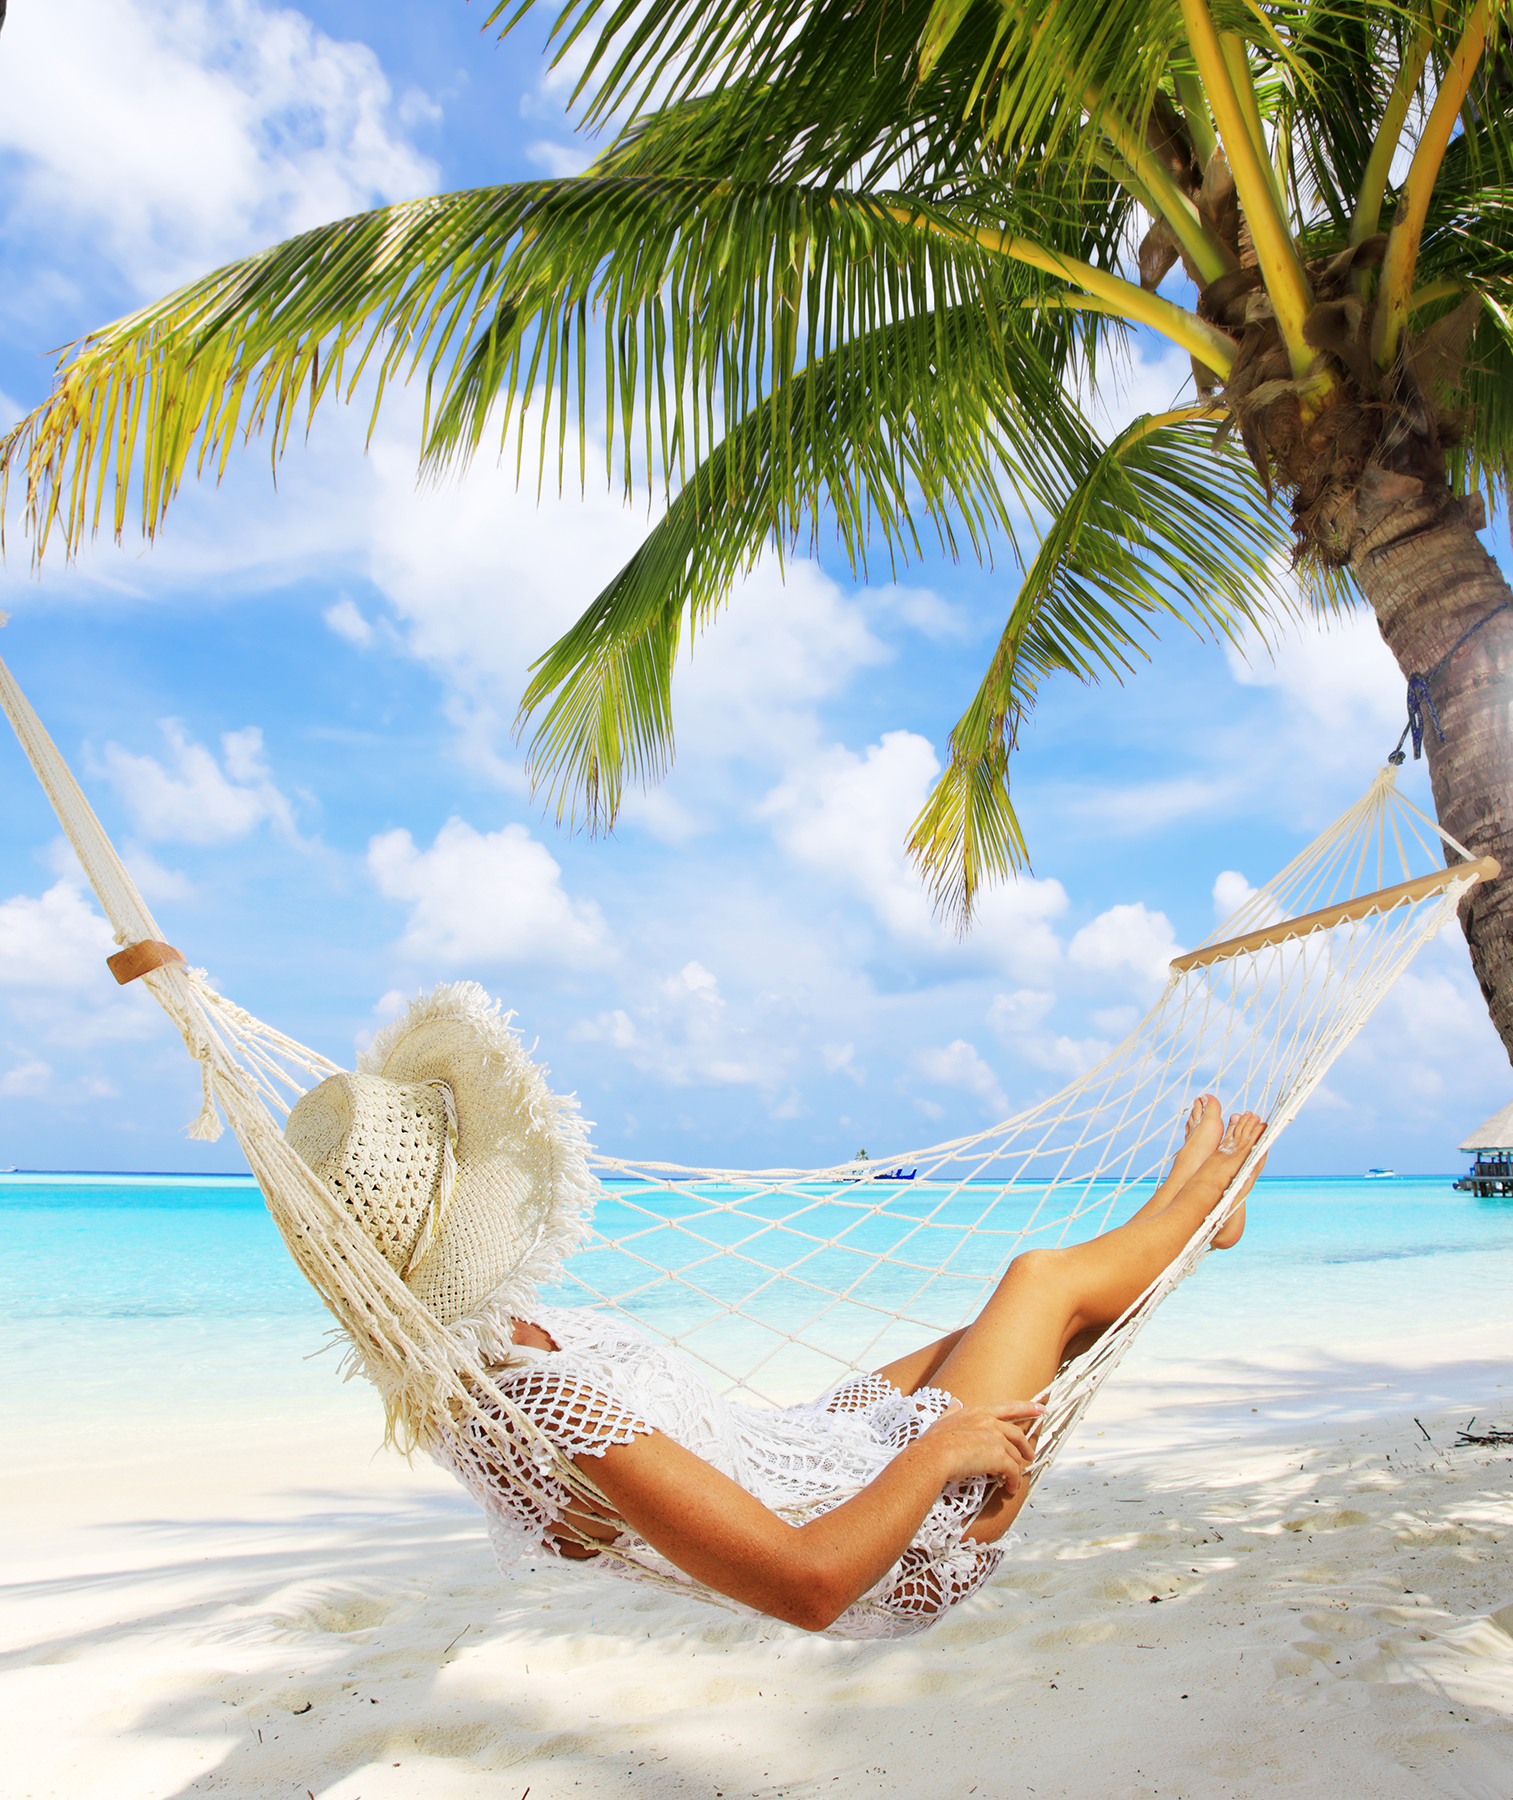 Woman in beach hammock between palm trees